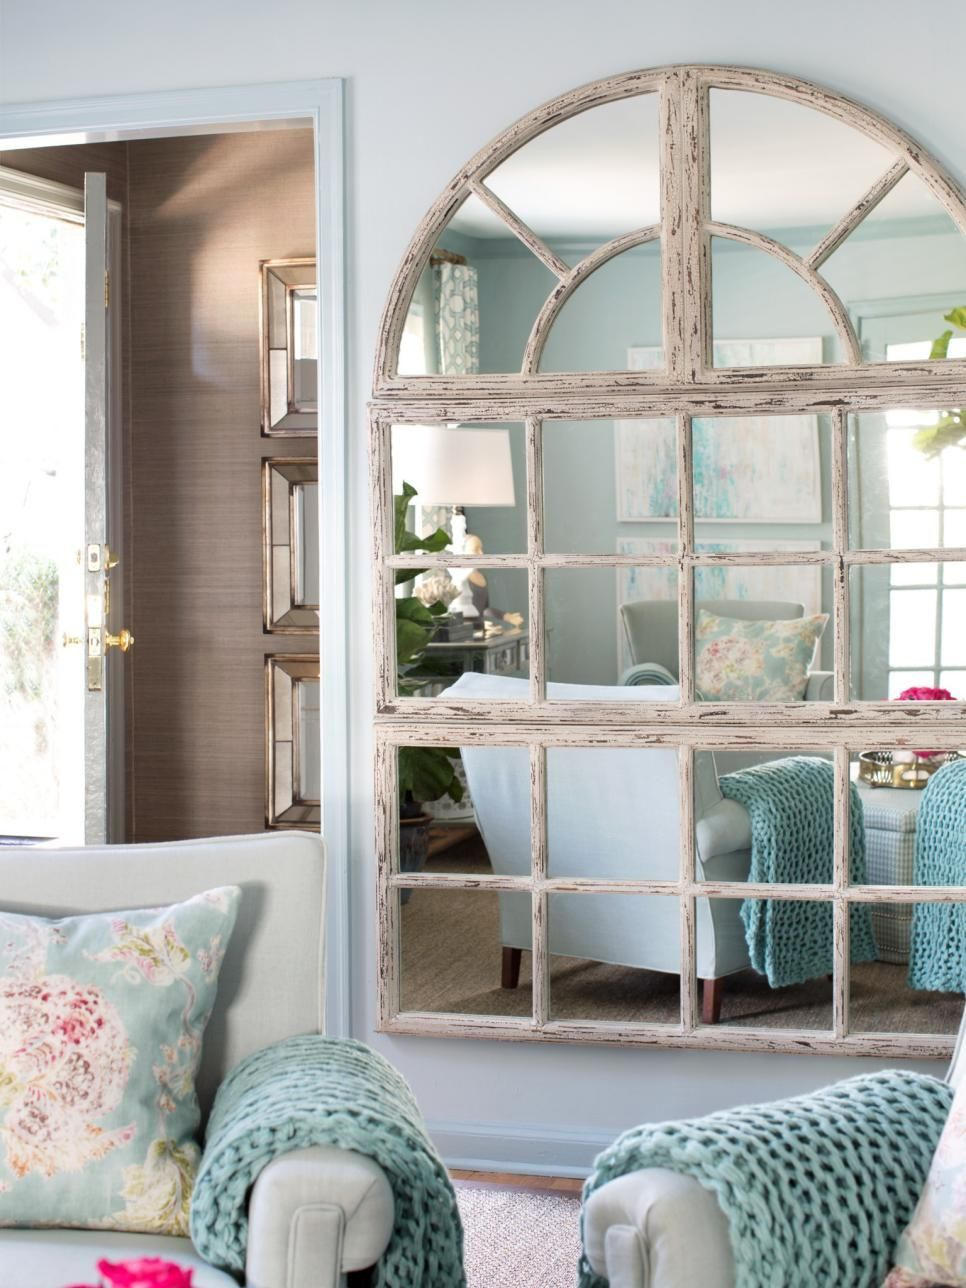 The Experts At Hgtv Share Small Living Room Ideas And Ways To Make A Look Feel Ger